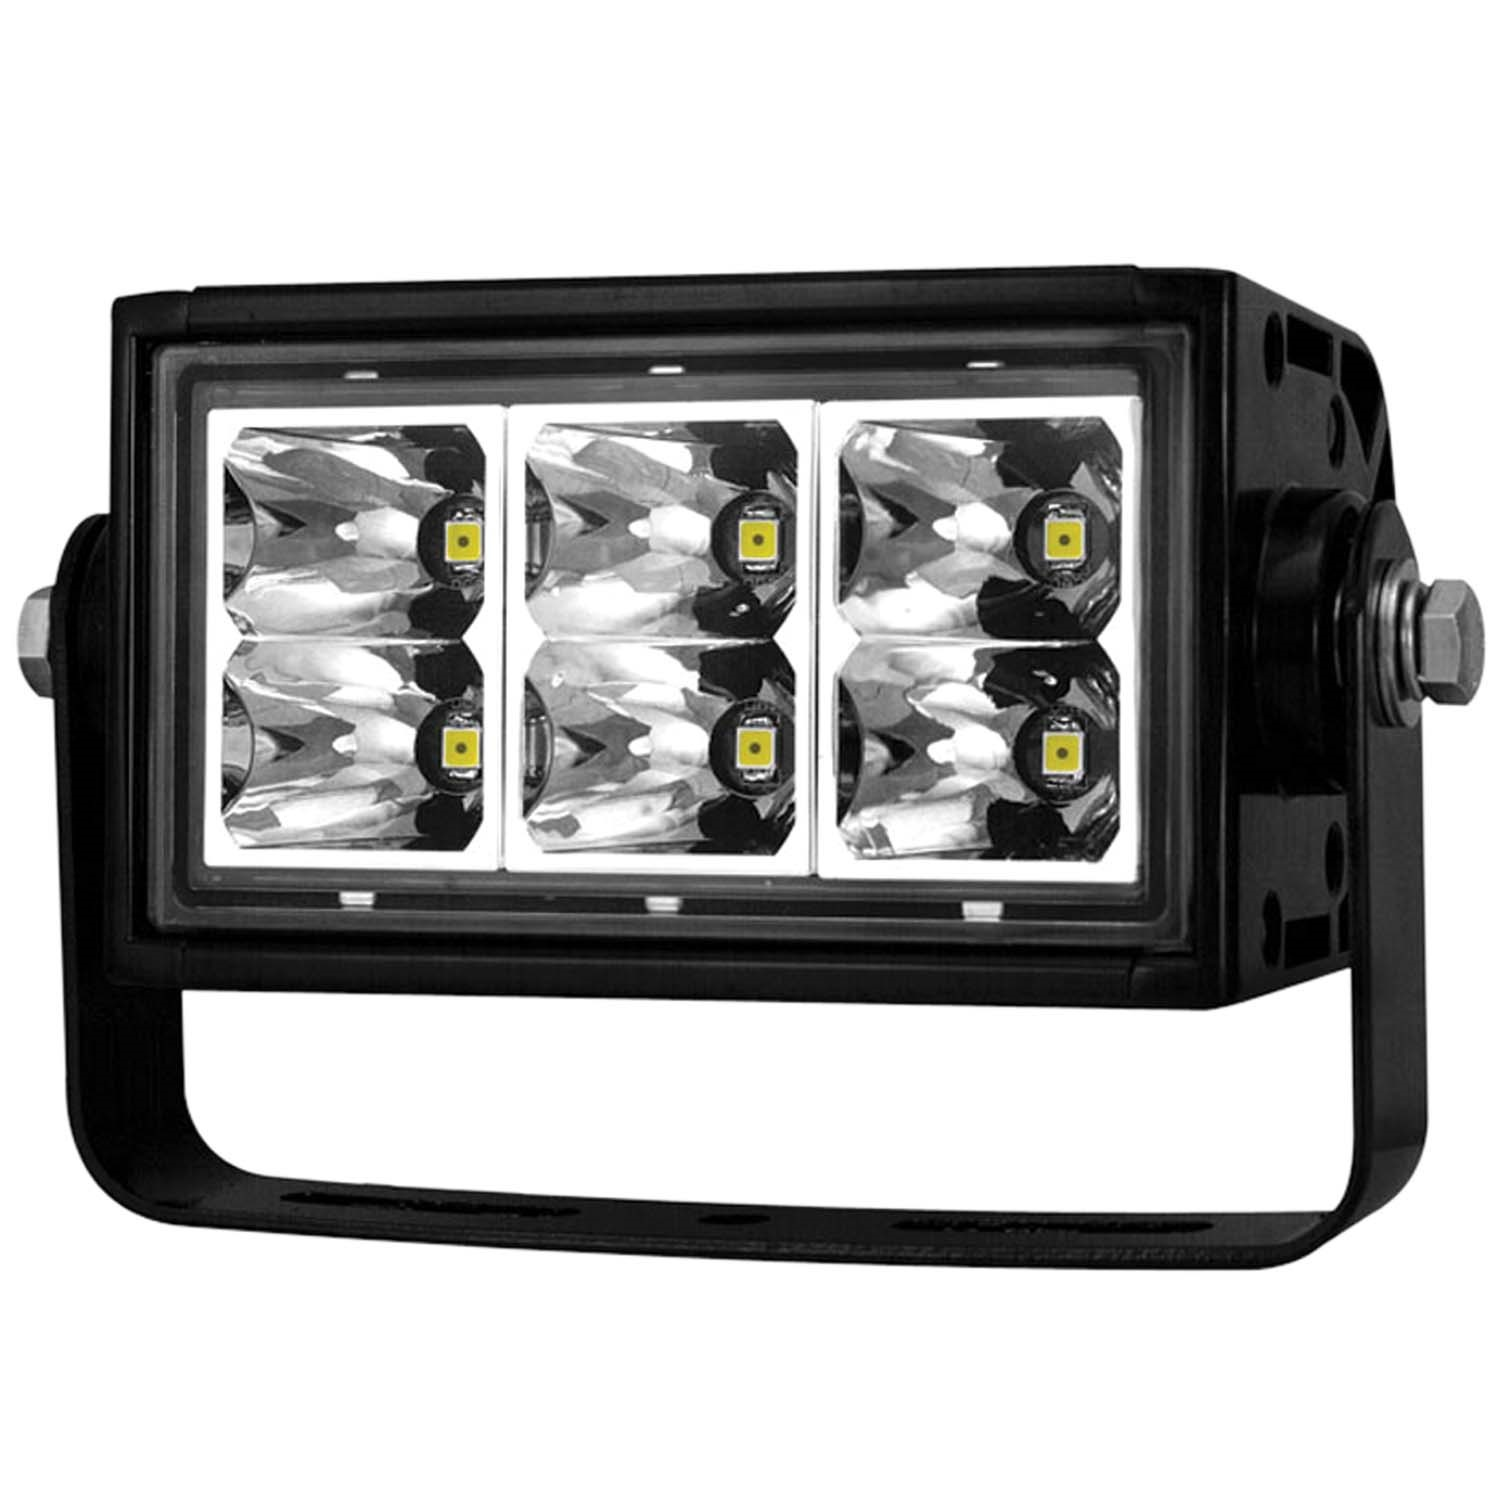 Anzo usa 881003 rugged vision off road led light bar 810169022184 ebay anzo usa 881003 rugged vision off road led light bar aloadofball Choice Image